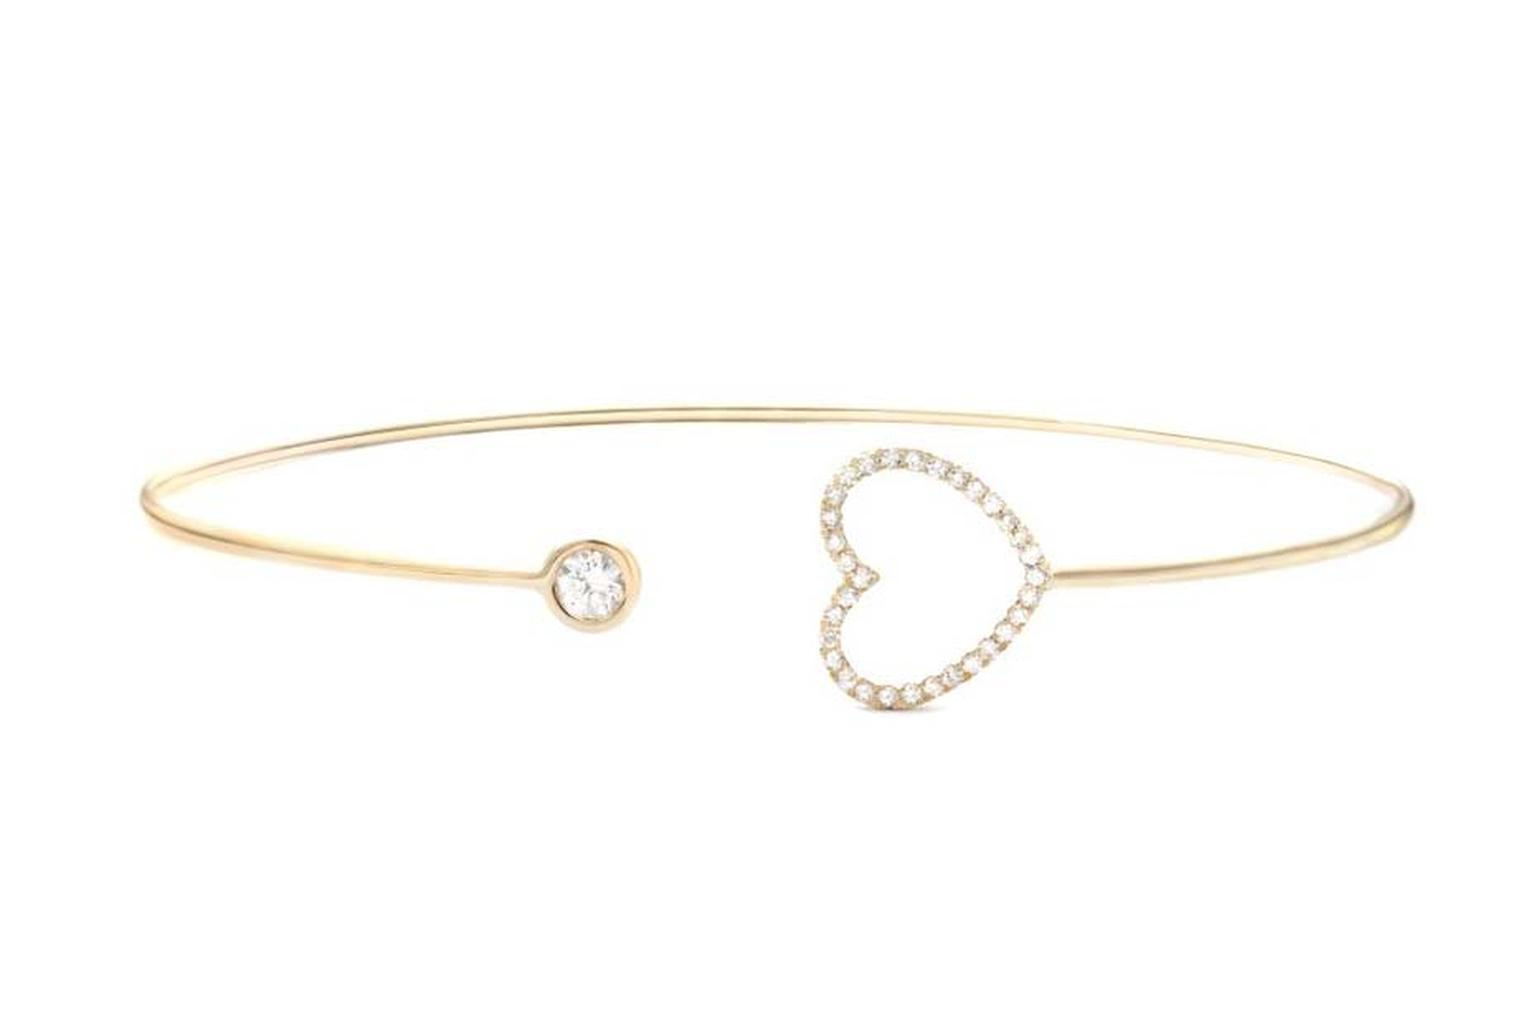 Vahina Tahi yellow gold and diamond Love Heart bracelet.